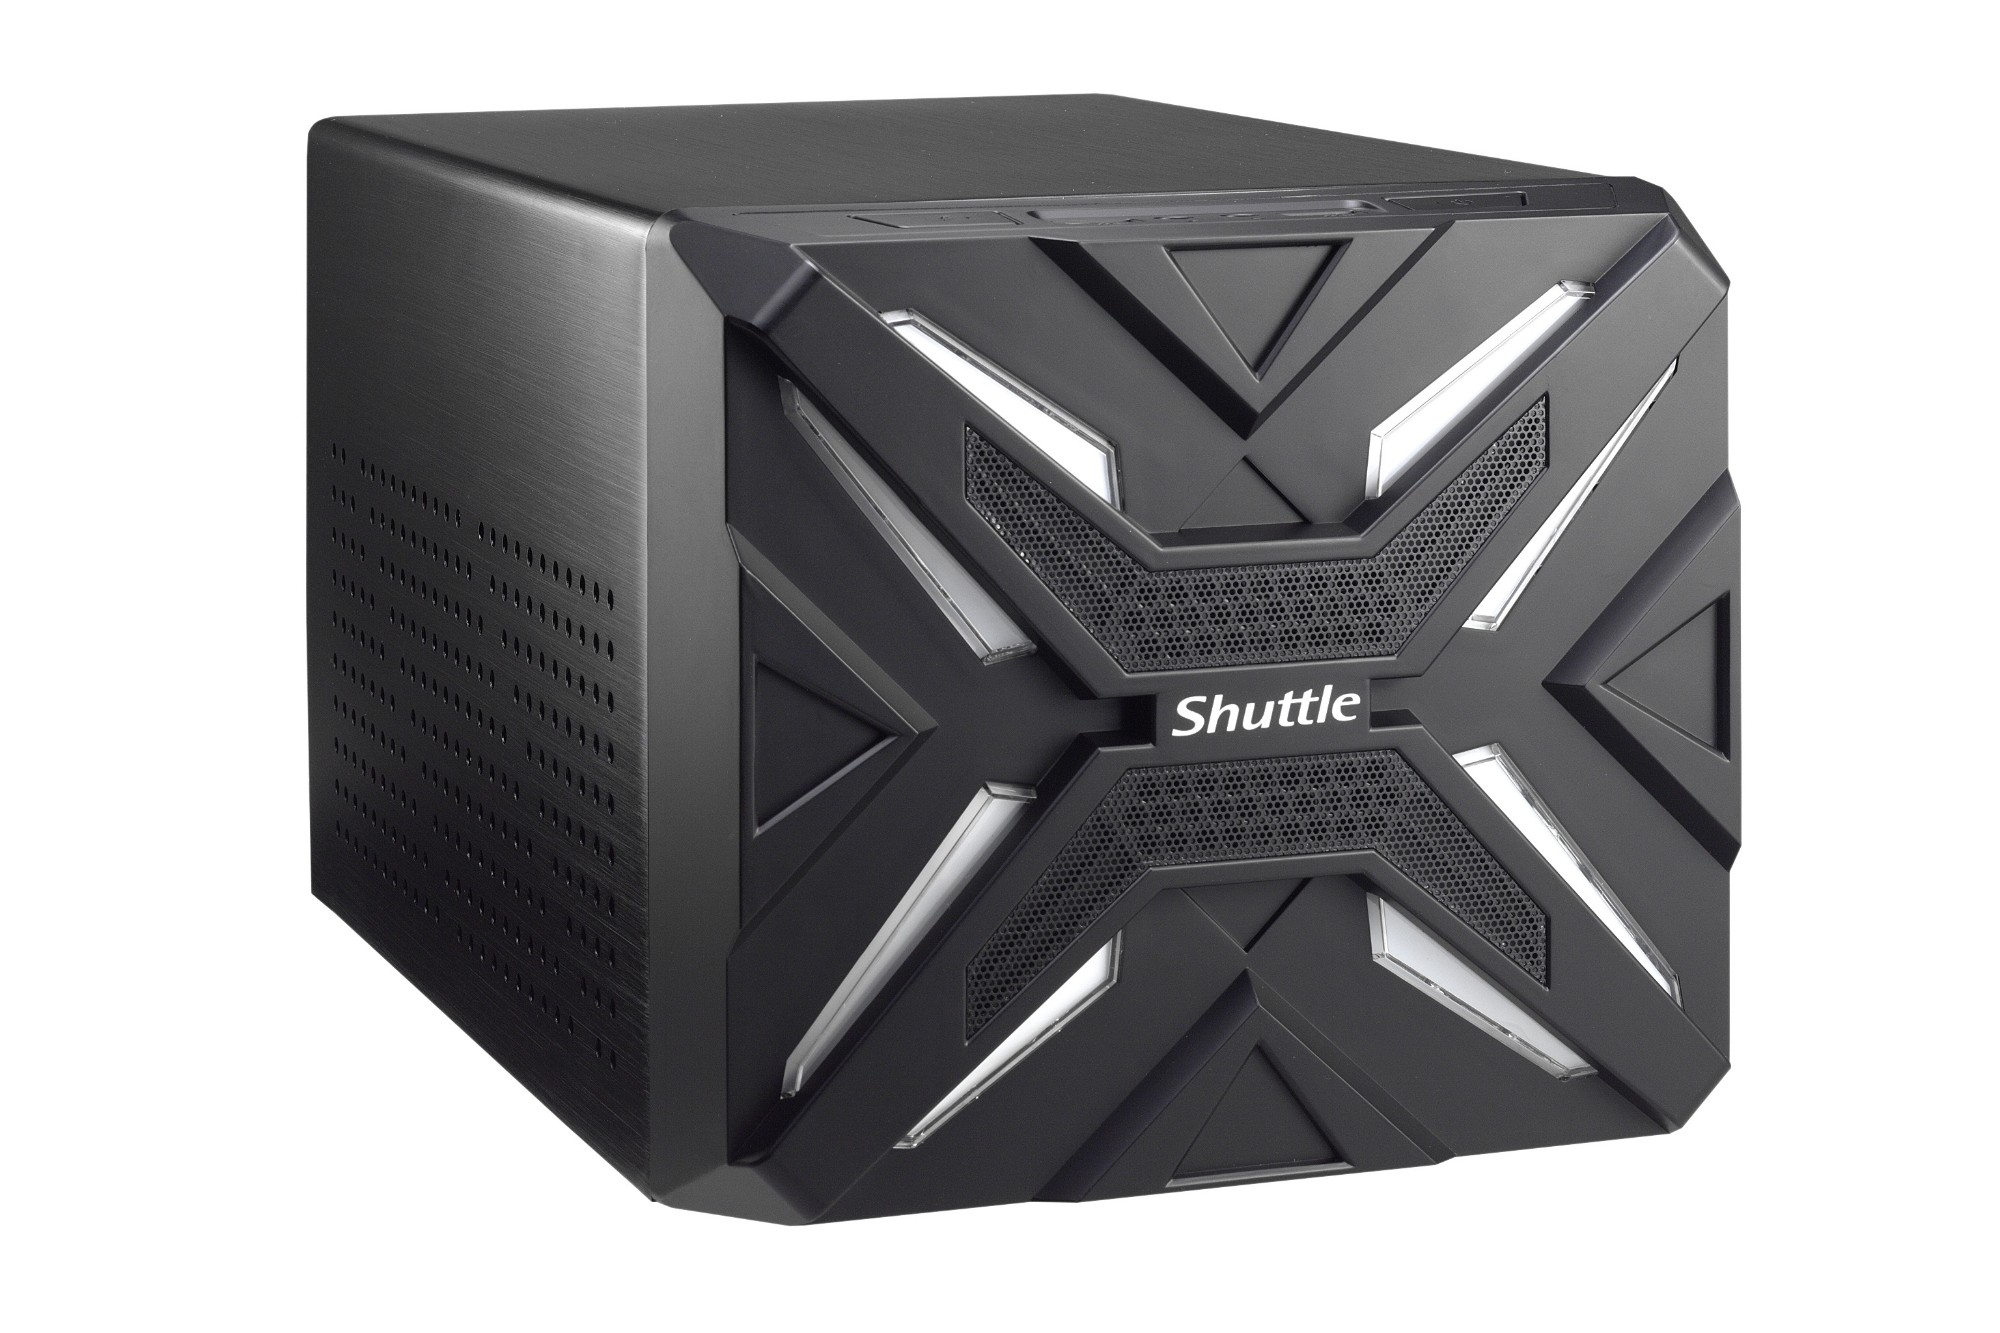 Shuttle XPC cube SZ270R9 Gaming Mini PC Barebone